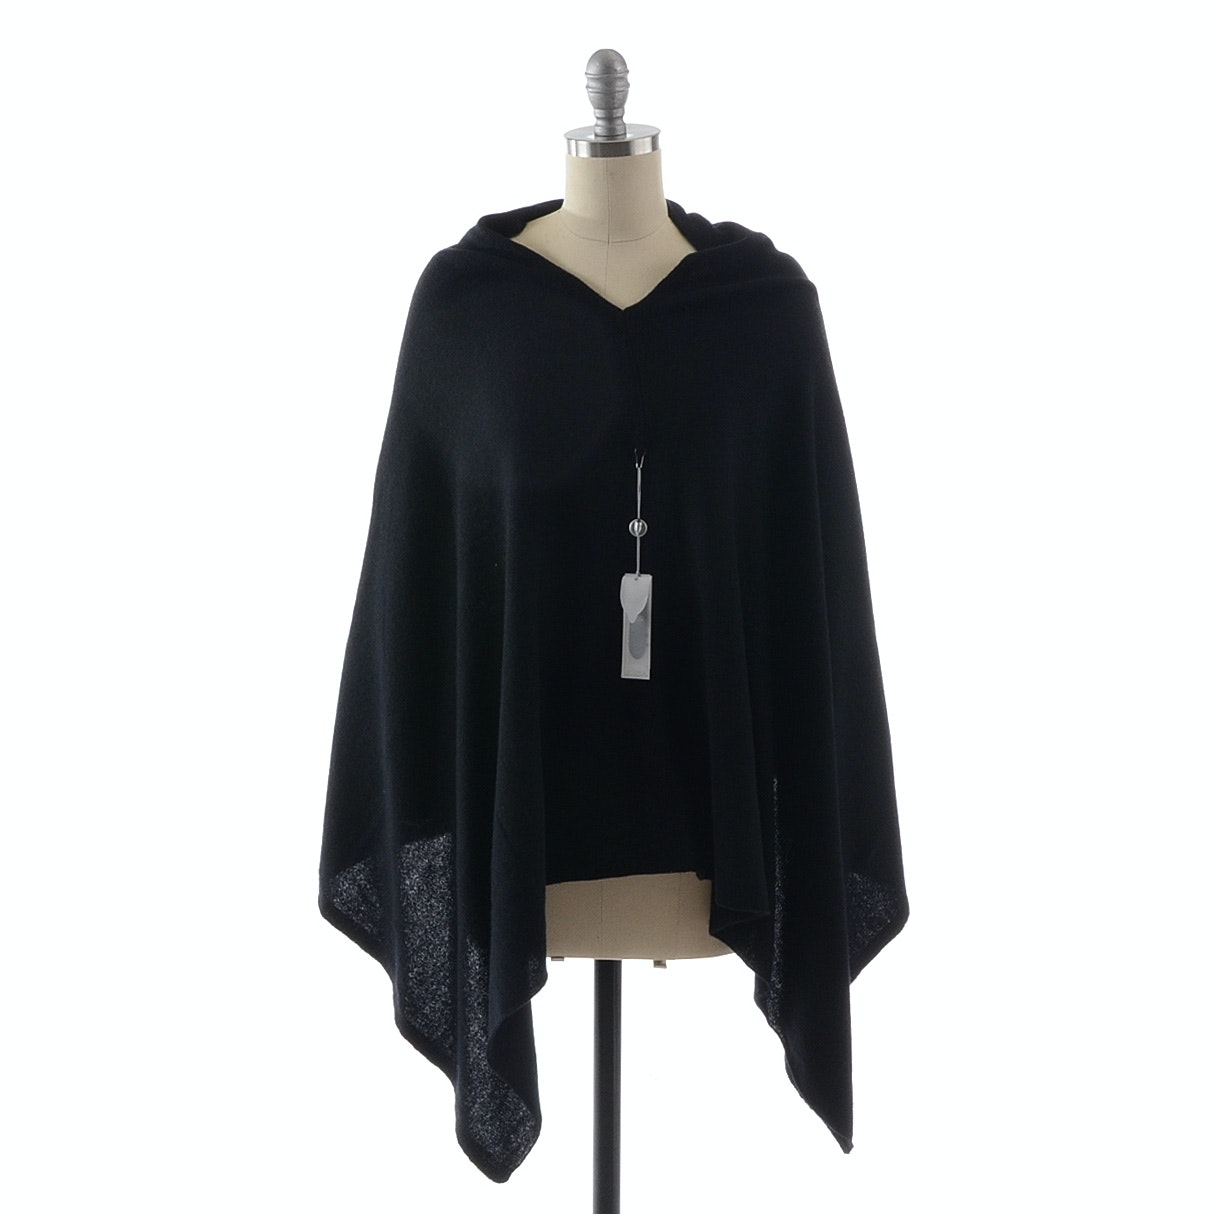 Christopher Fischer Black Cashmere Knit Poncho